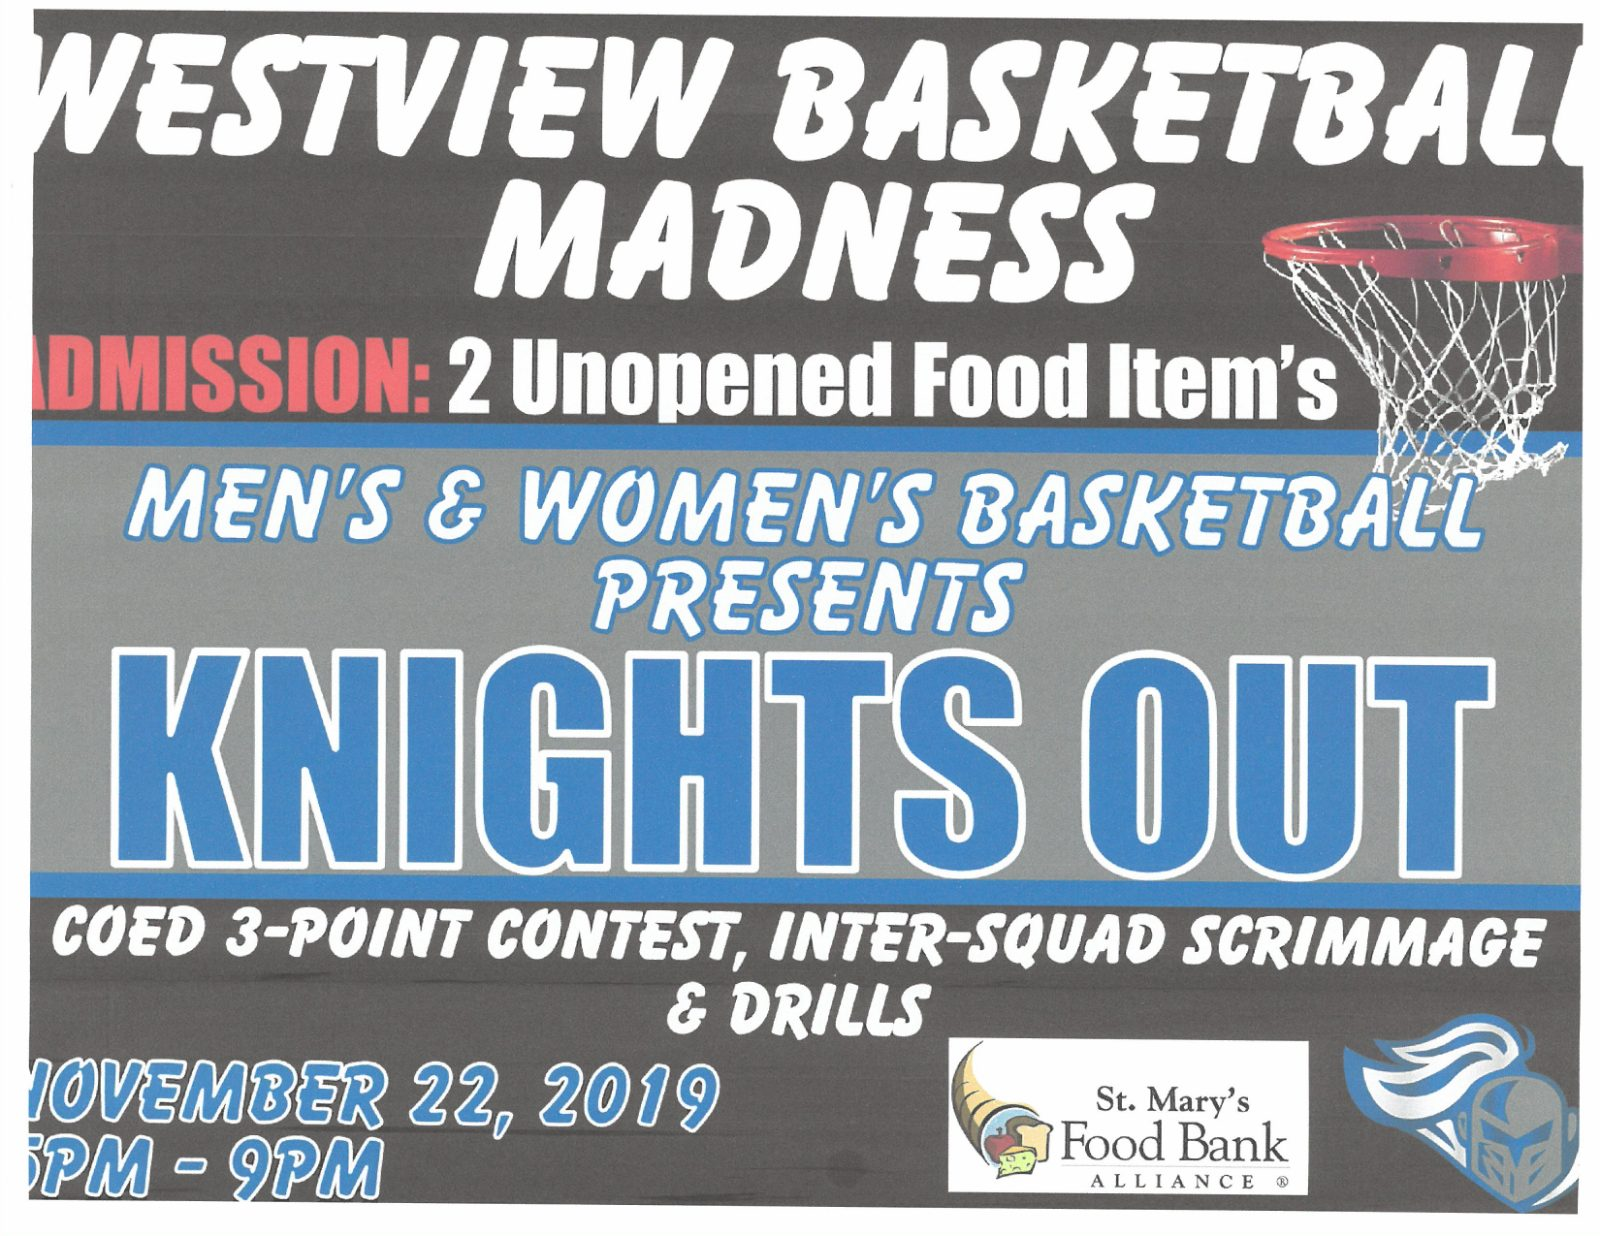 KNIGHTS OUT Boys and Girls Basketball Event